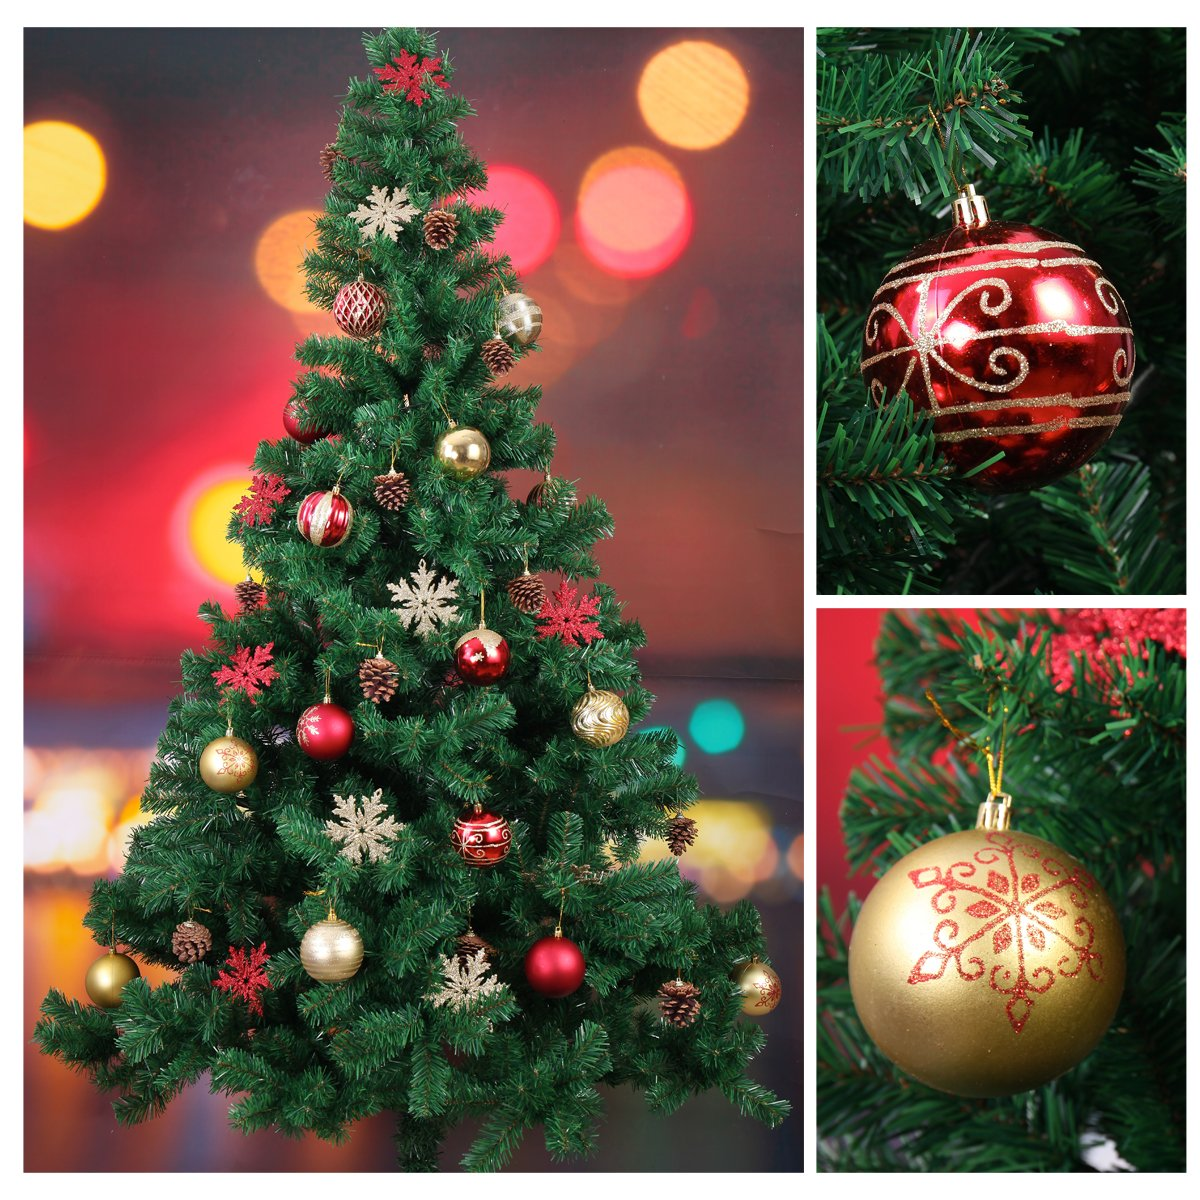 Amazon.com: Joiedomi 25 Pack of Christmas Ball Ornaments Set for ...